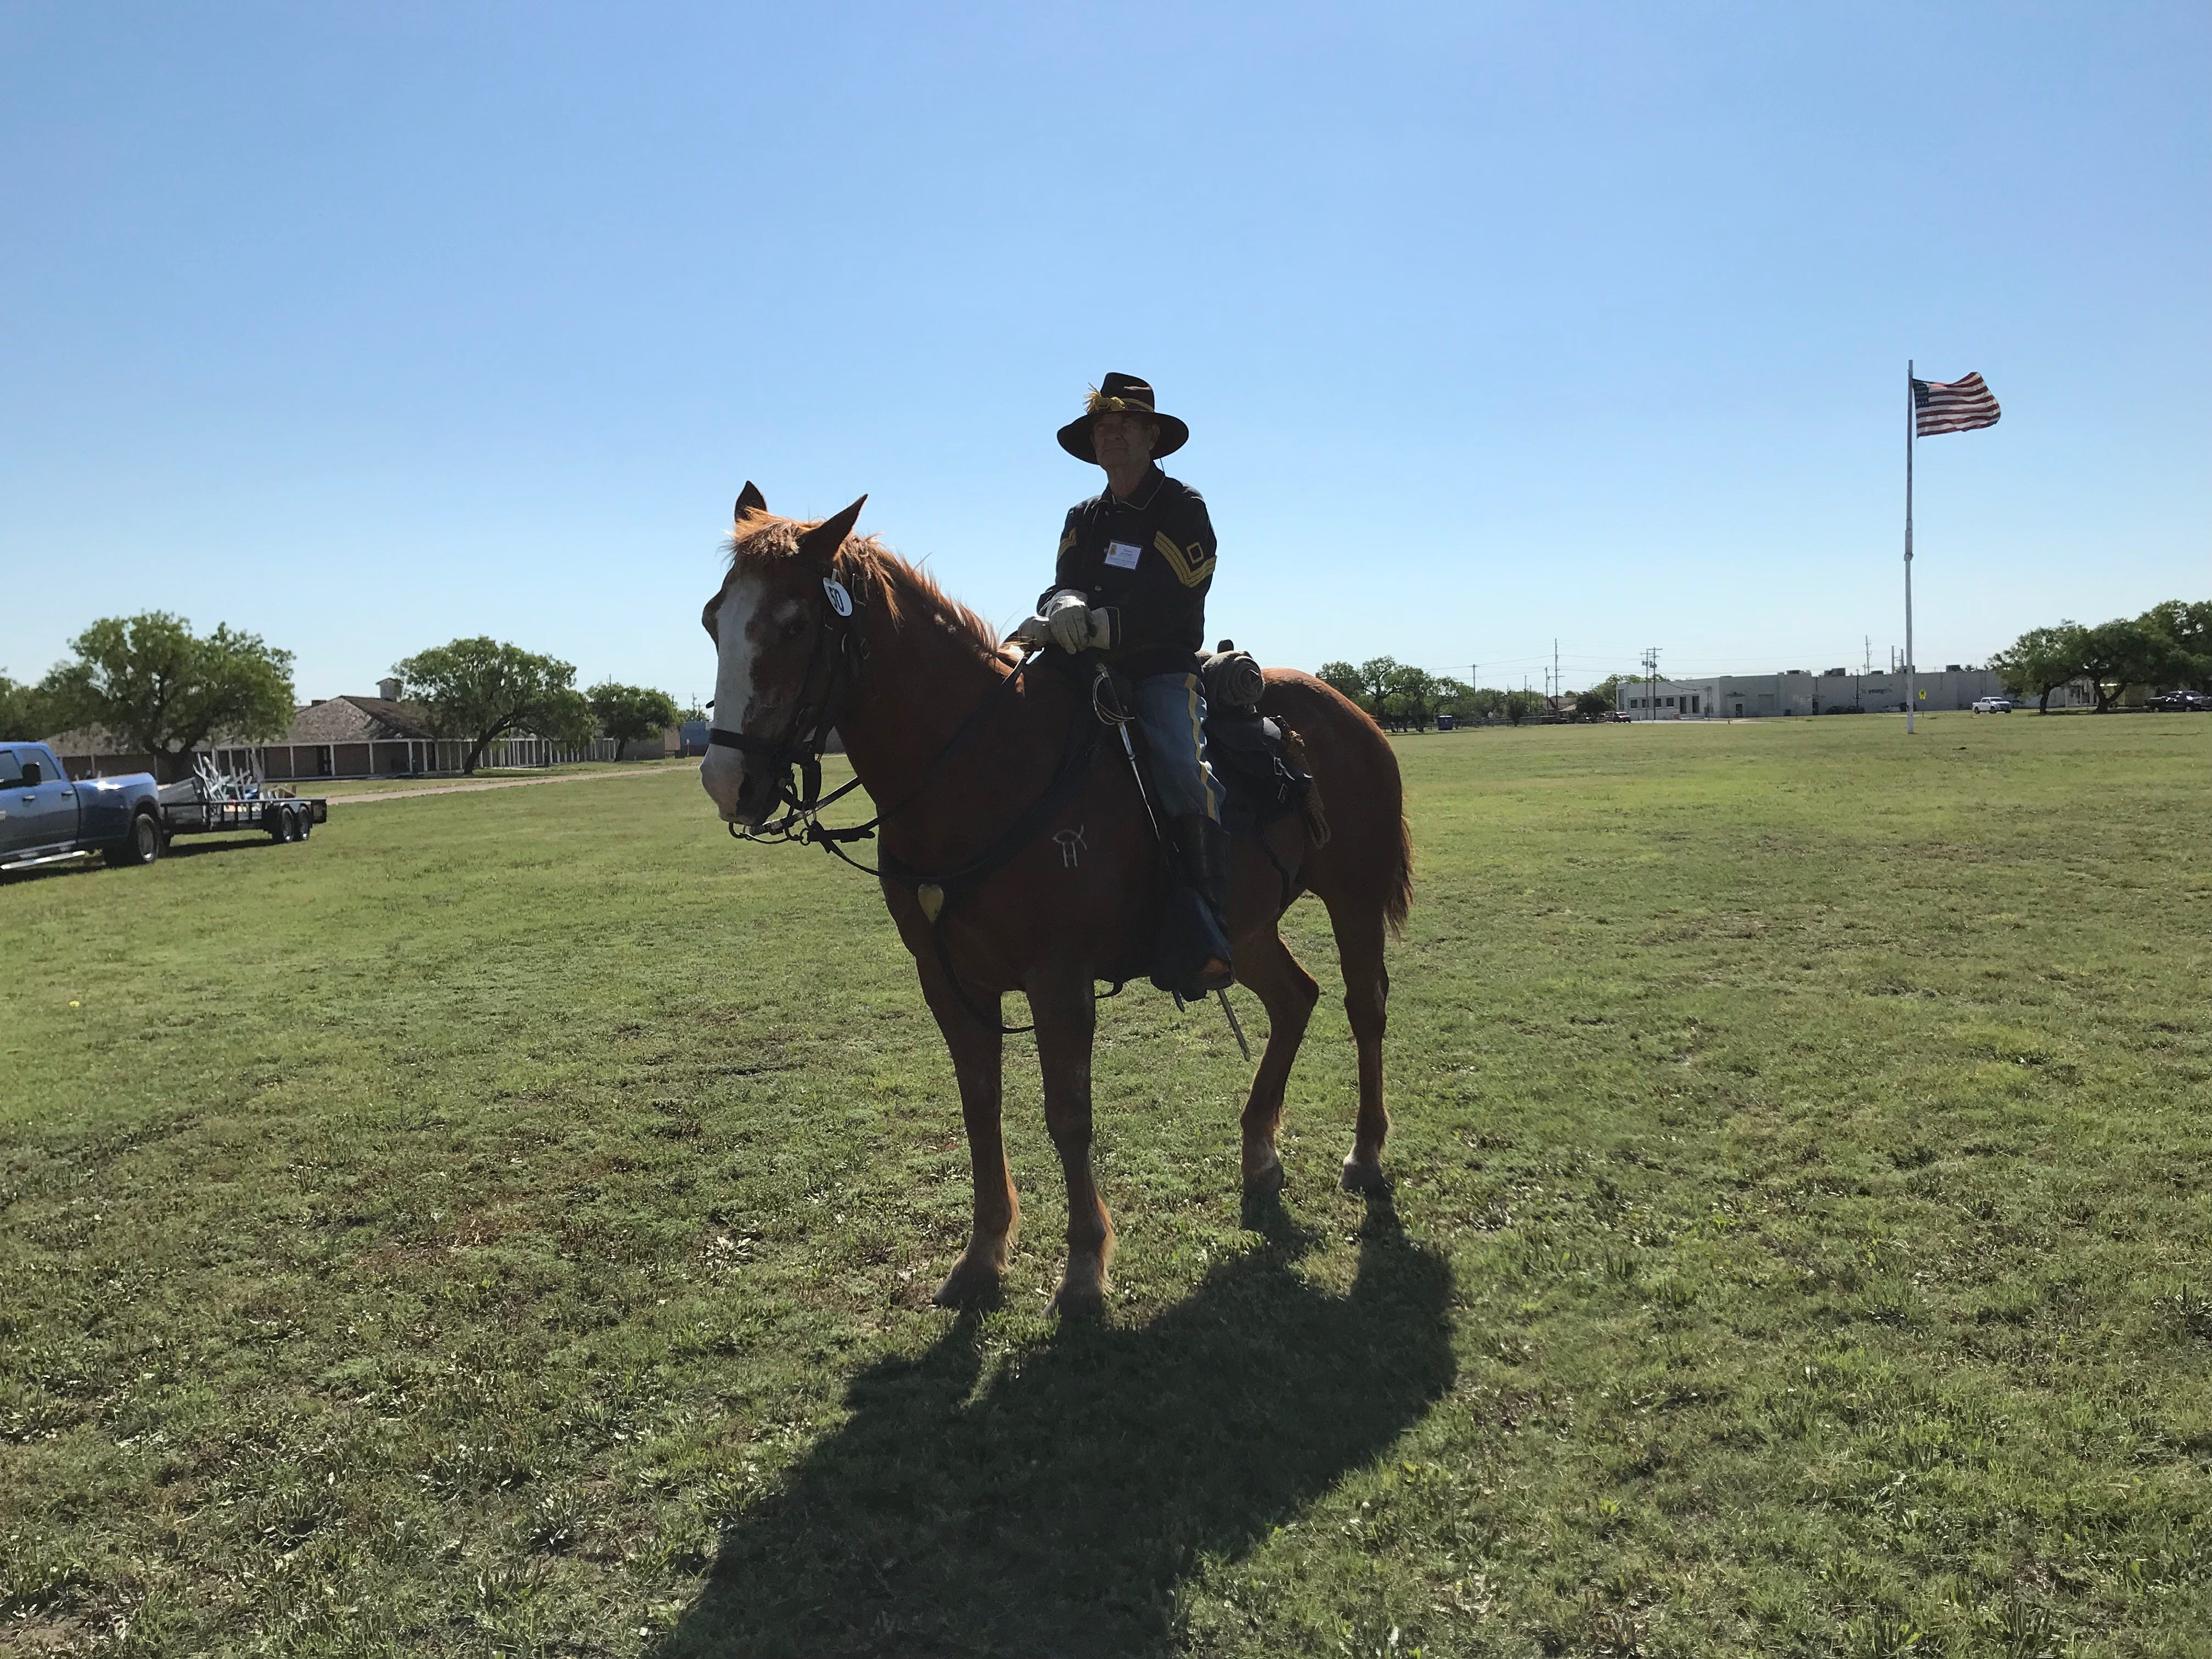 Ron Perry, 1st sergeant of Fort Concho's Company D, and Rooster, pause at the Regional Cavalry Competition at Fort Concho, 630 S. Oakes St. on Friday, April 26, 2019.